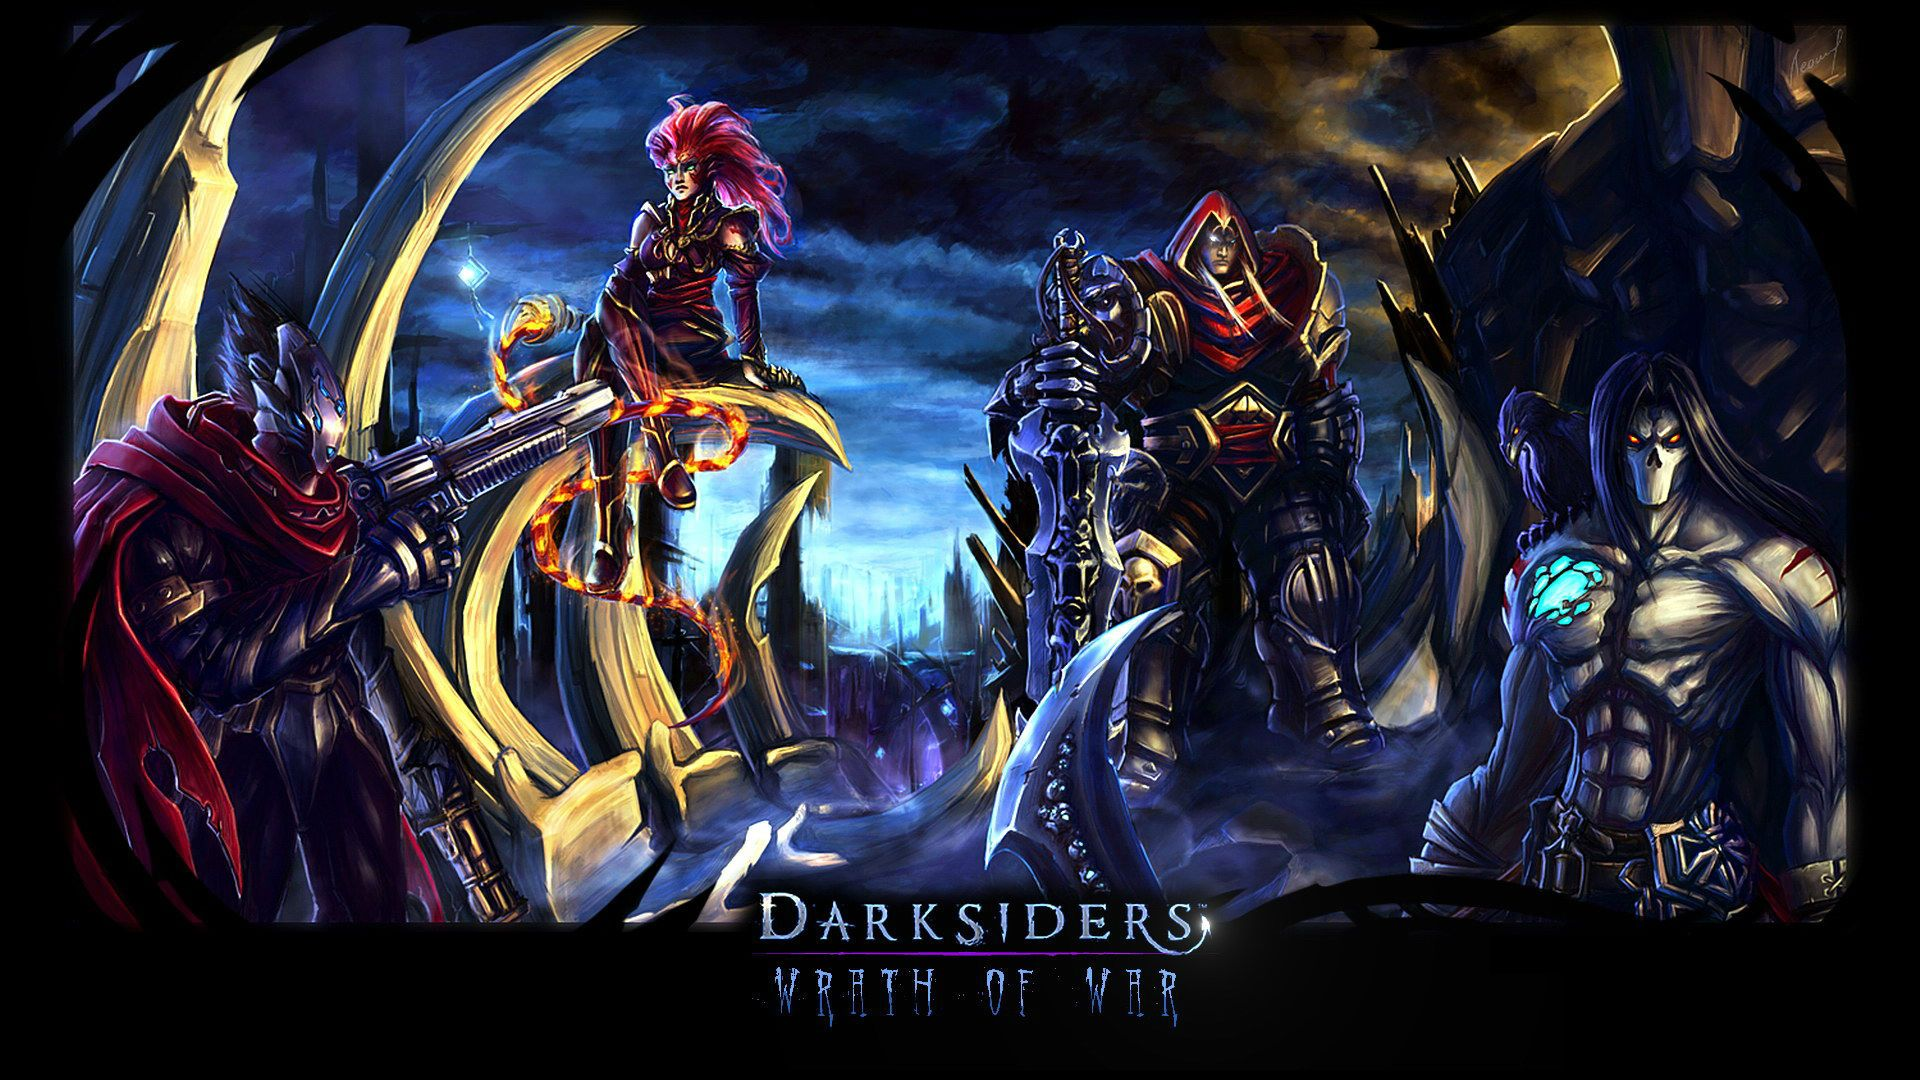 darksiders | games | pinterest | wallpaper, game background and hd